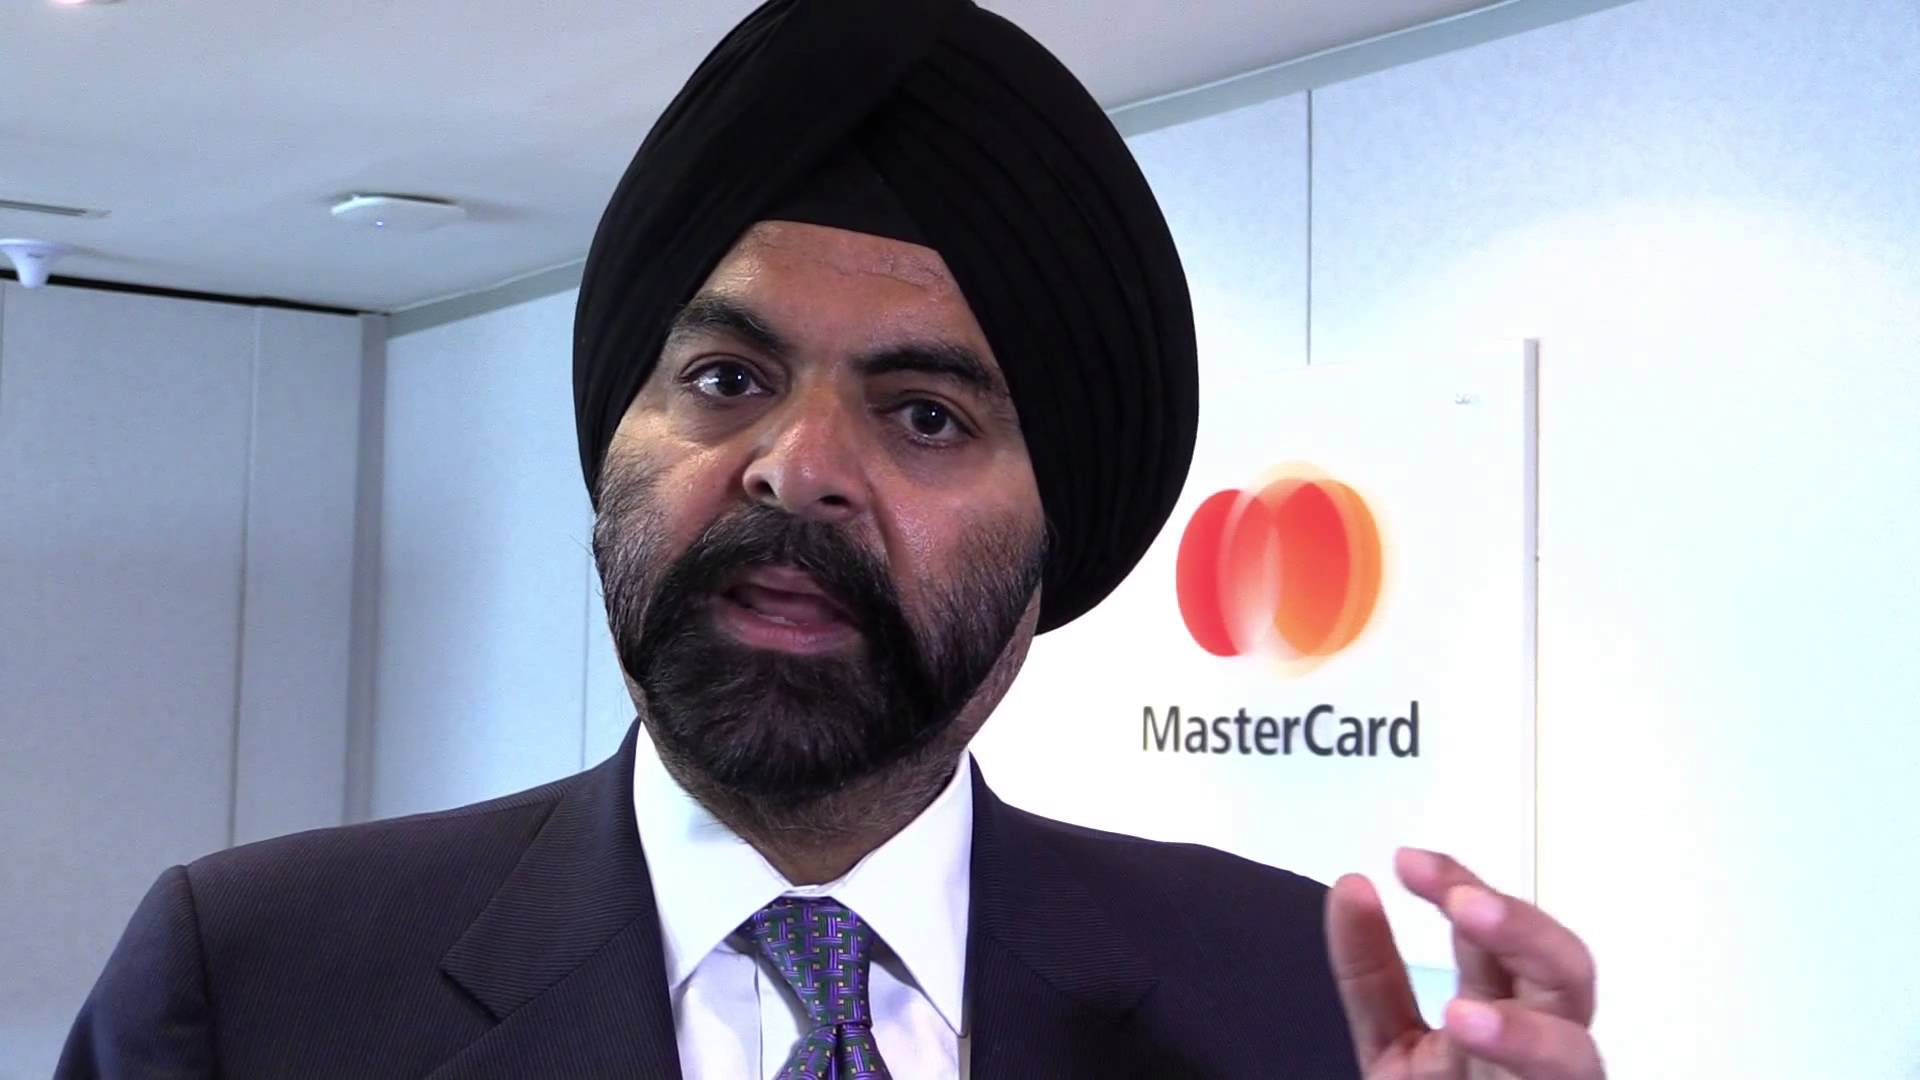 indians ruling us companies mastercard